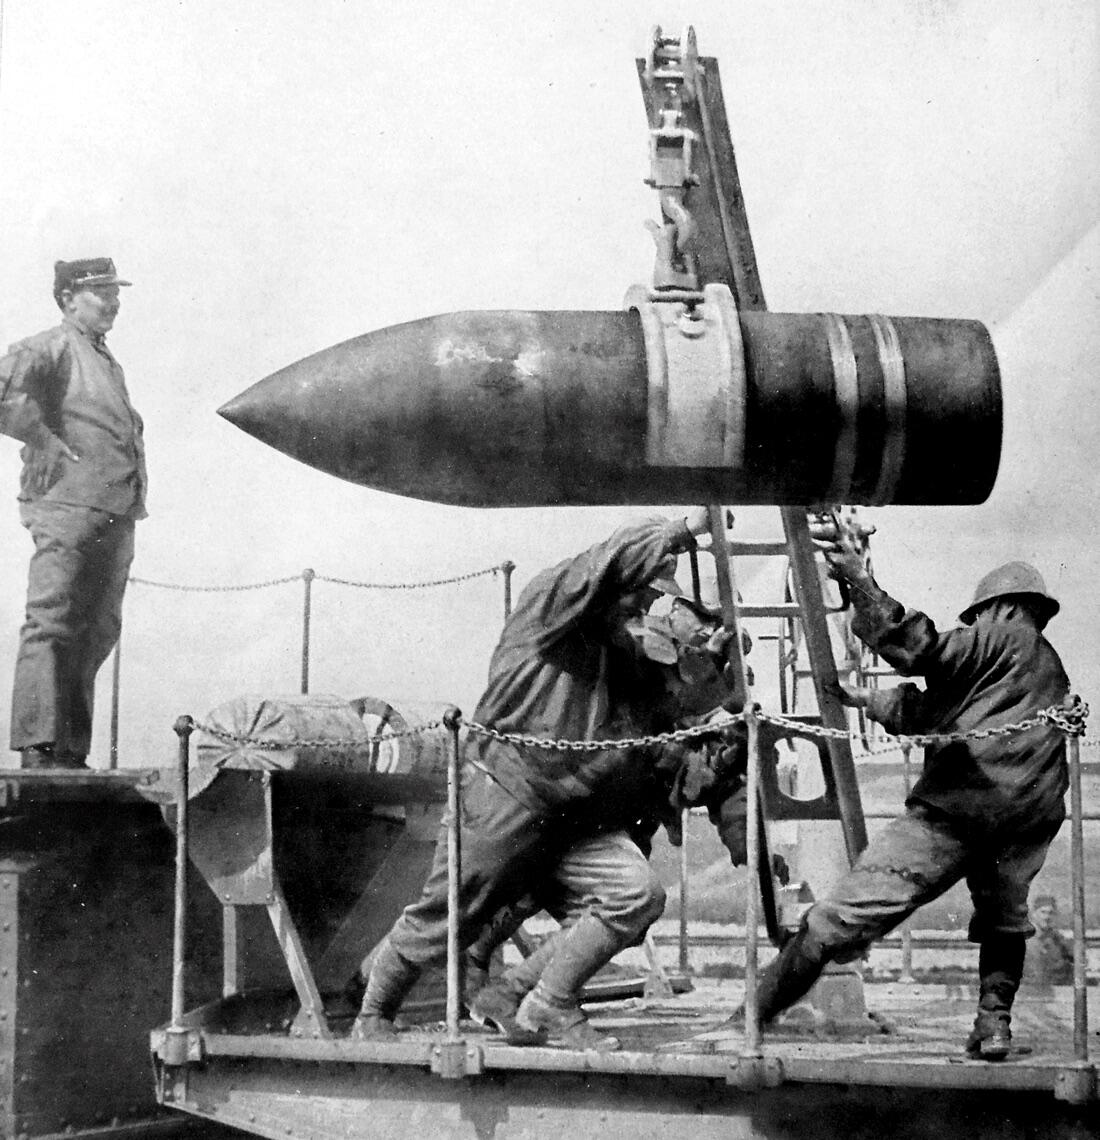 An artillery shell is hoisted into position by soldiers.